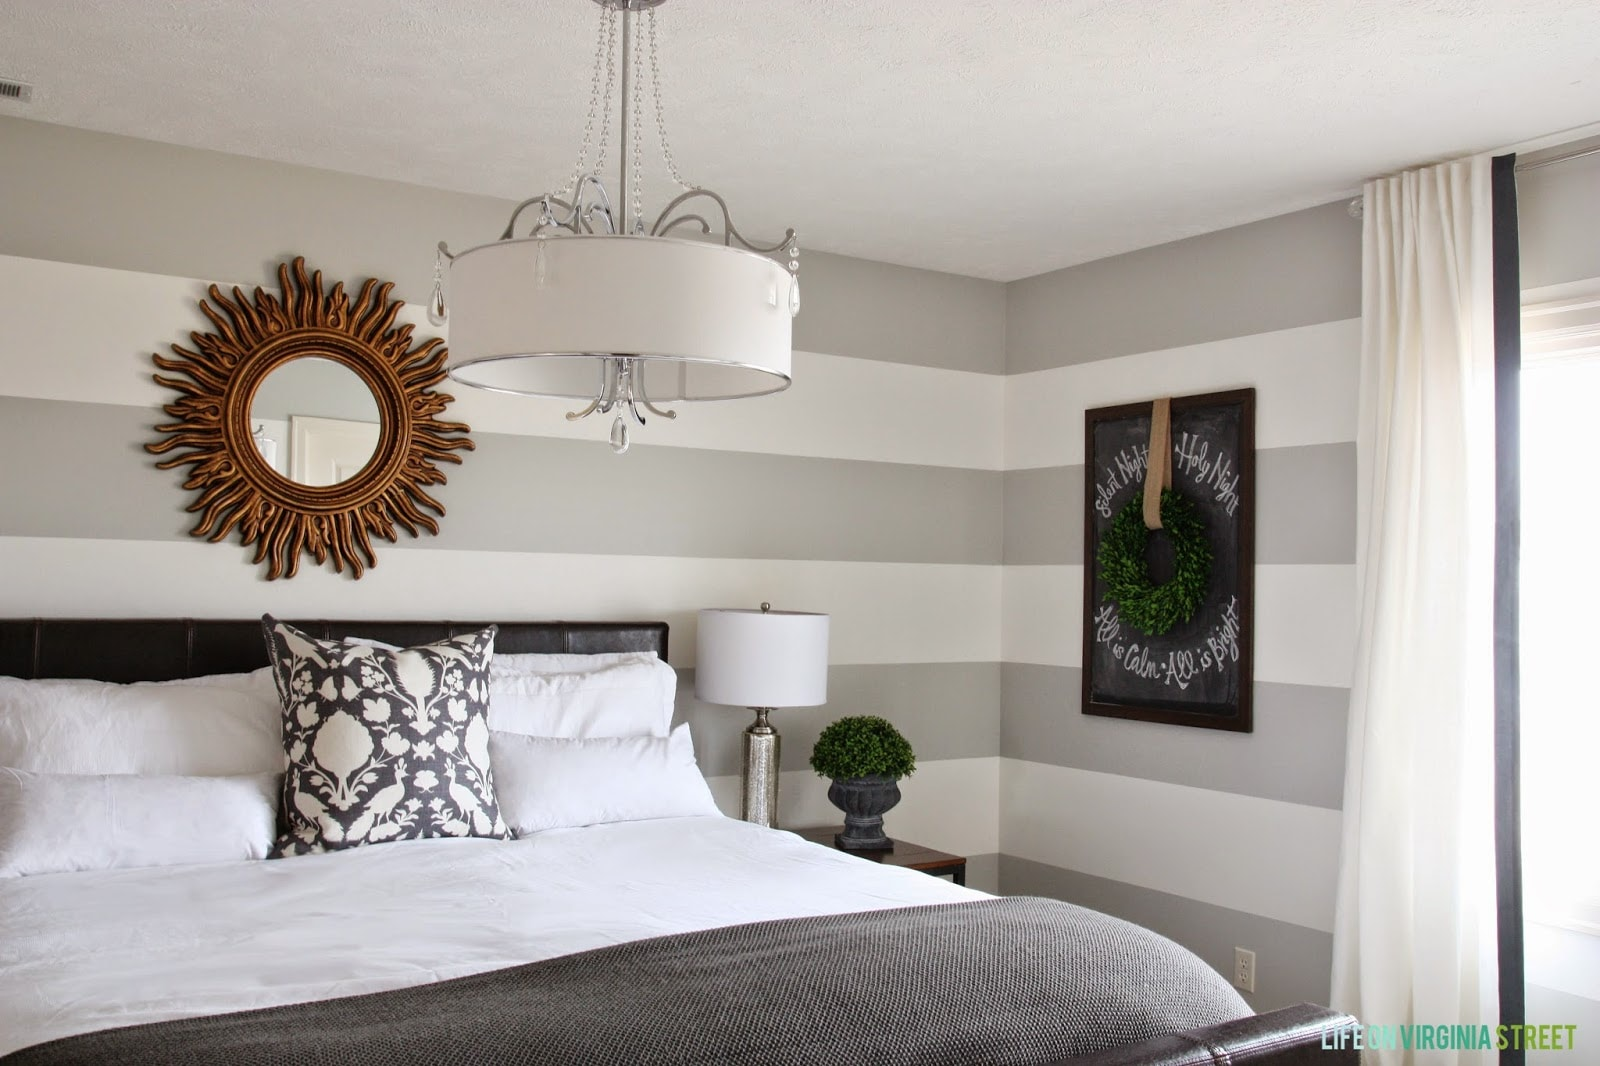 A large gold mirror is behind the bed on the wall in the bedroom.